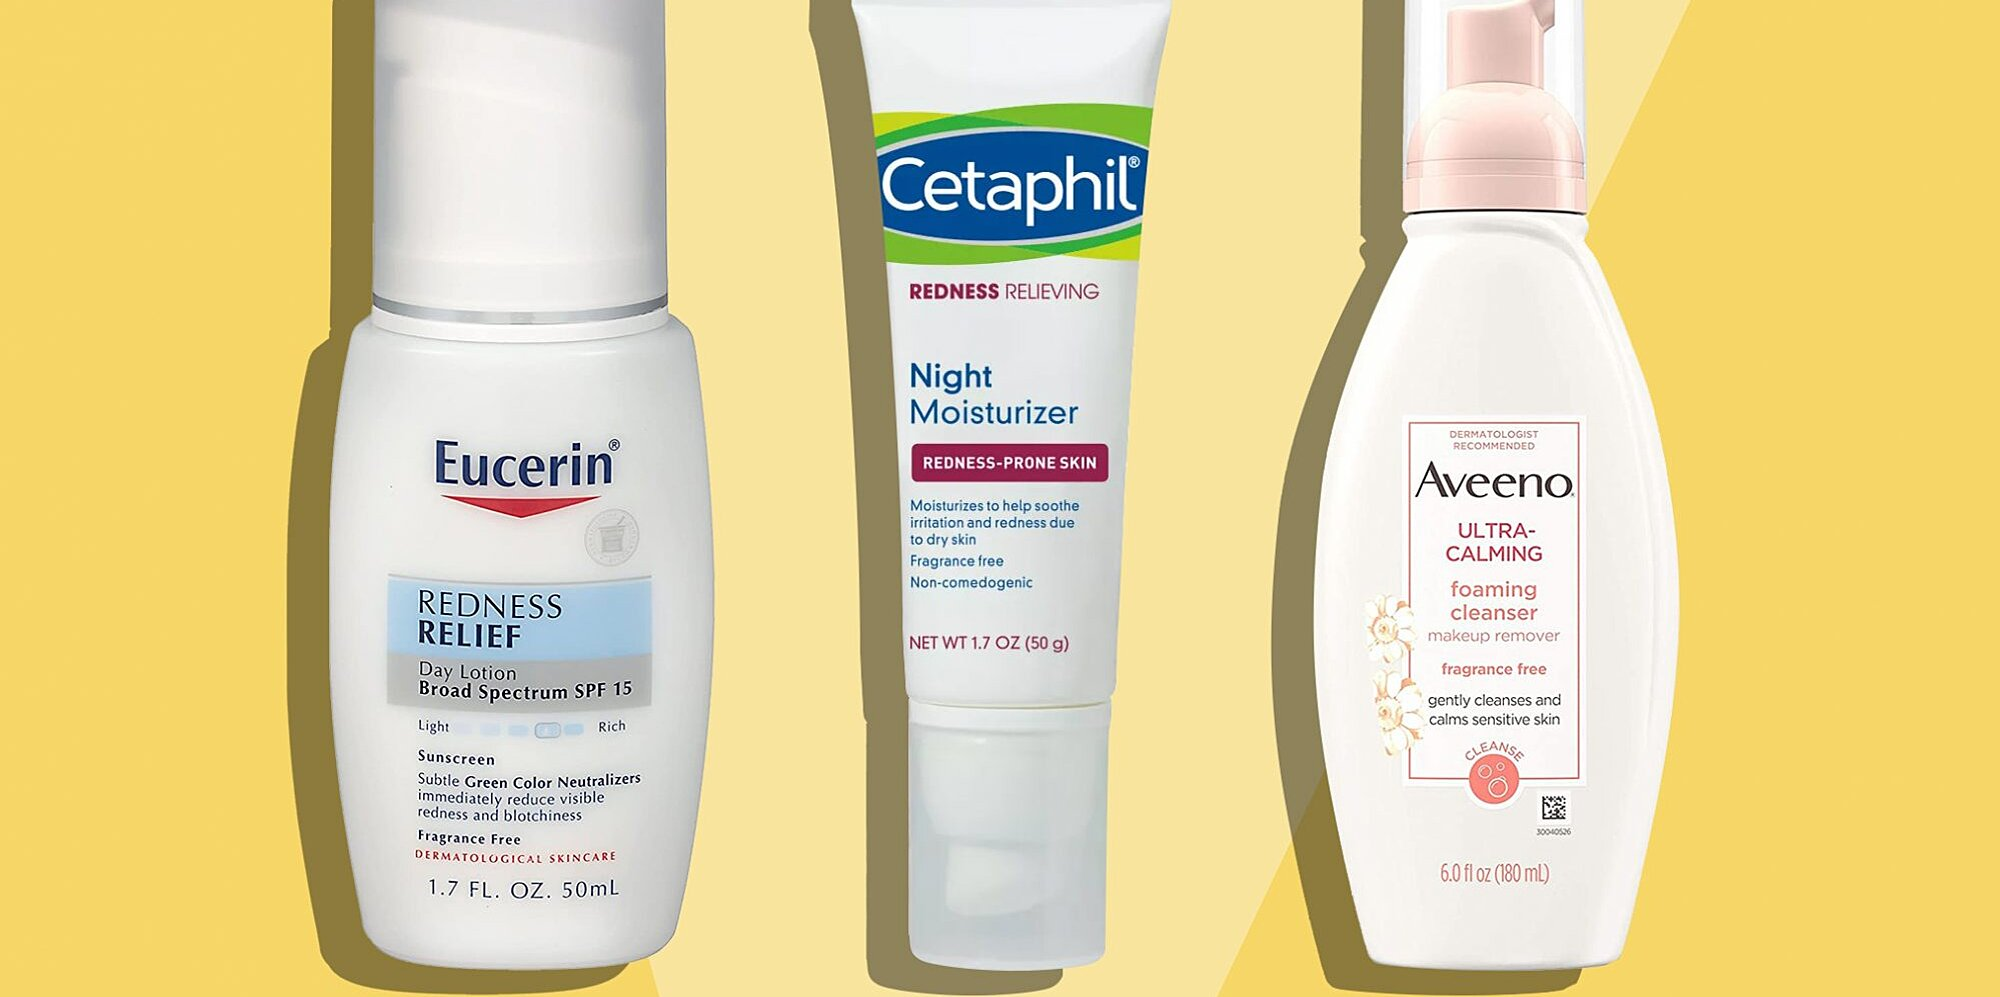 We Tried Dozens of Redness-Relieving Products—These Are the 10 That Actually Work